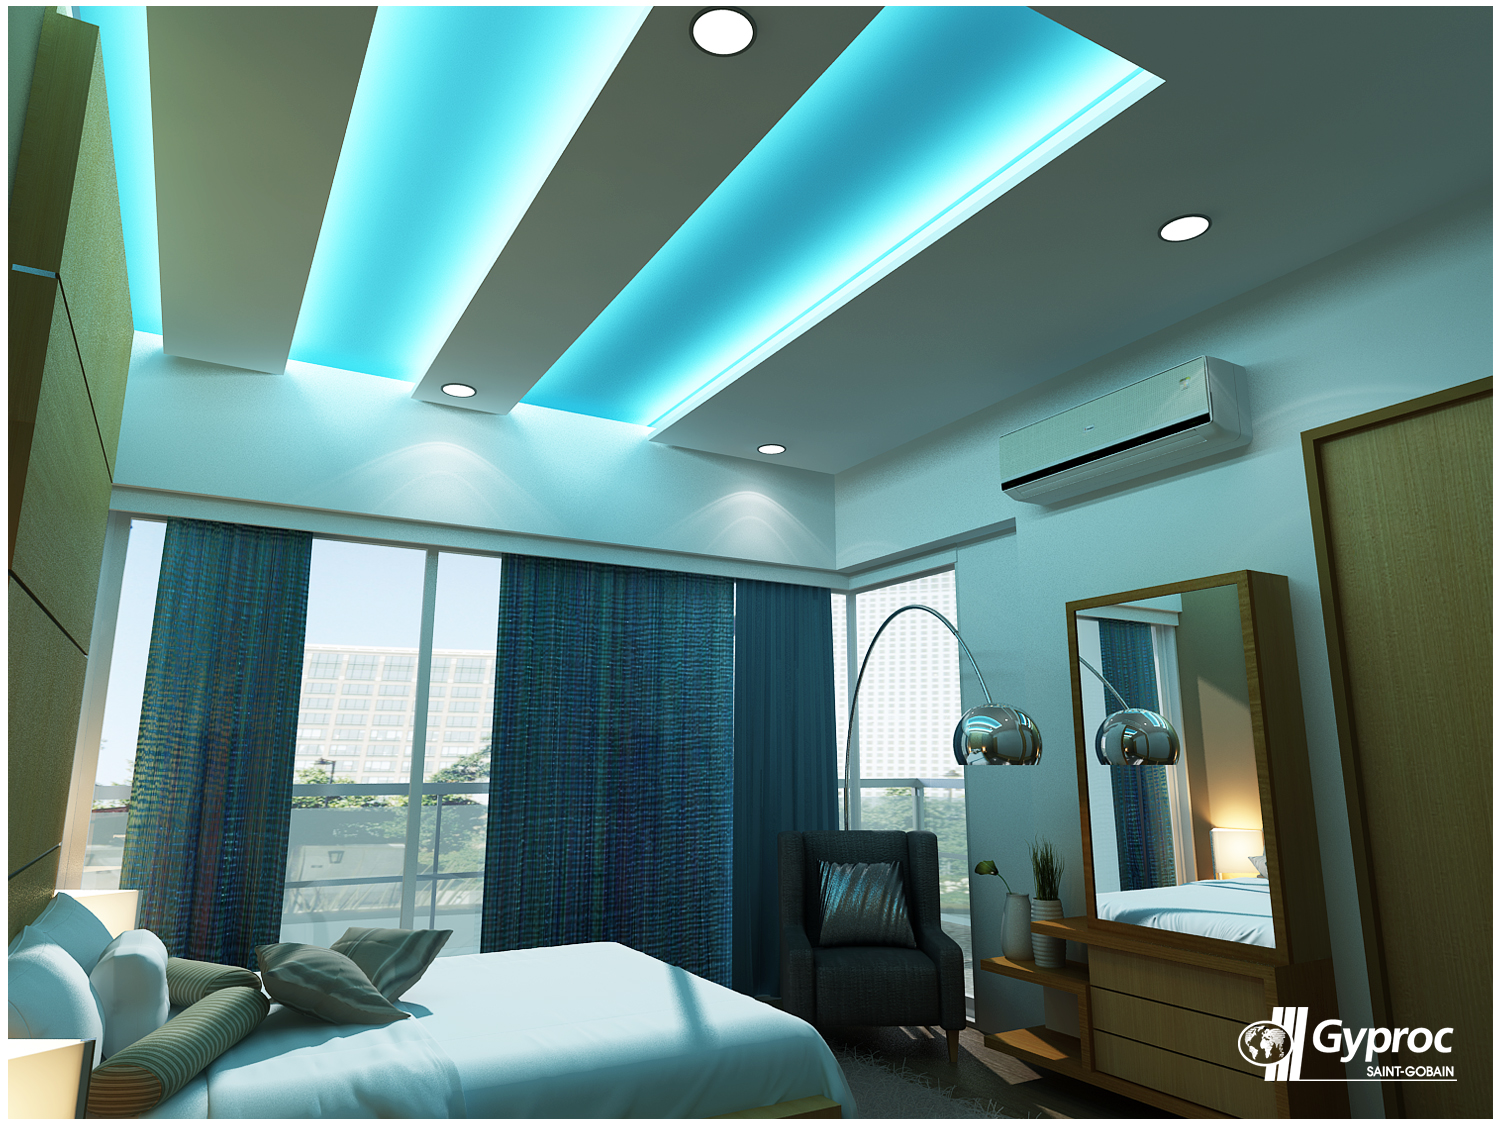 Plafond Gyproc Enhance The Beauty Of Your Bedroom With Gyproc Ceilings